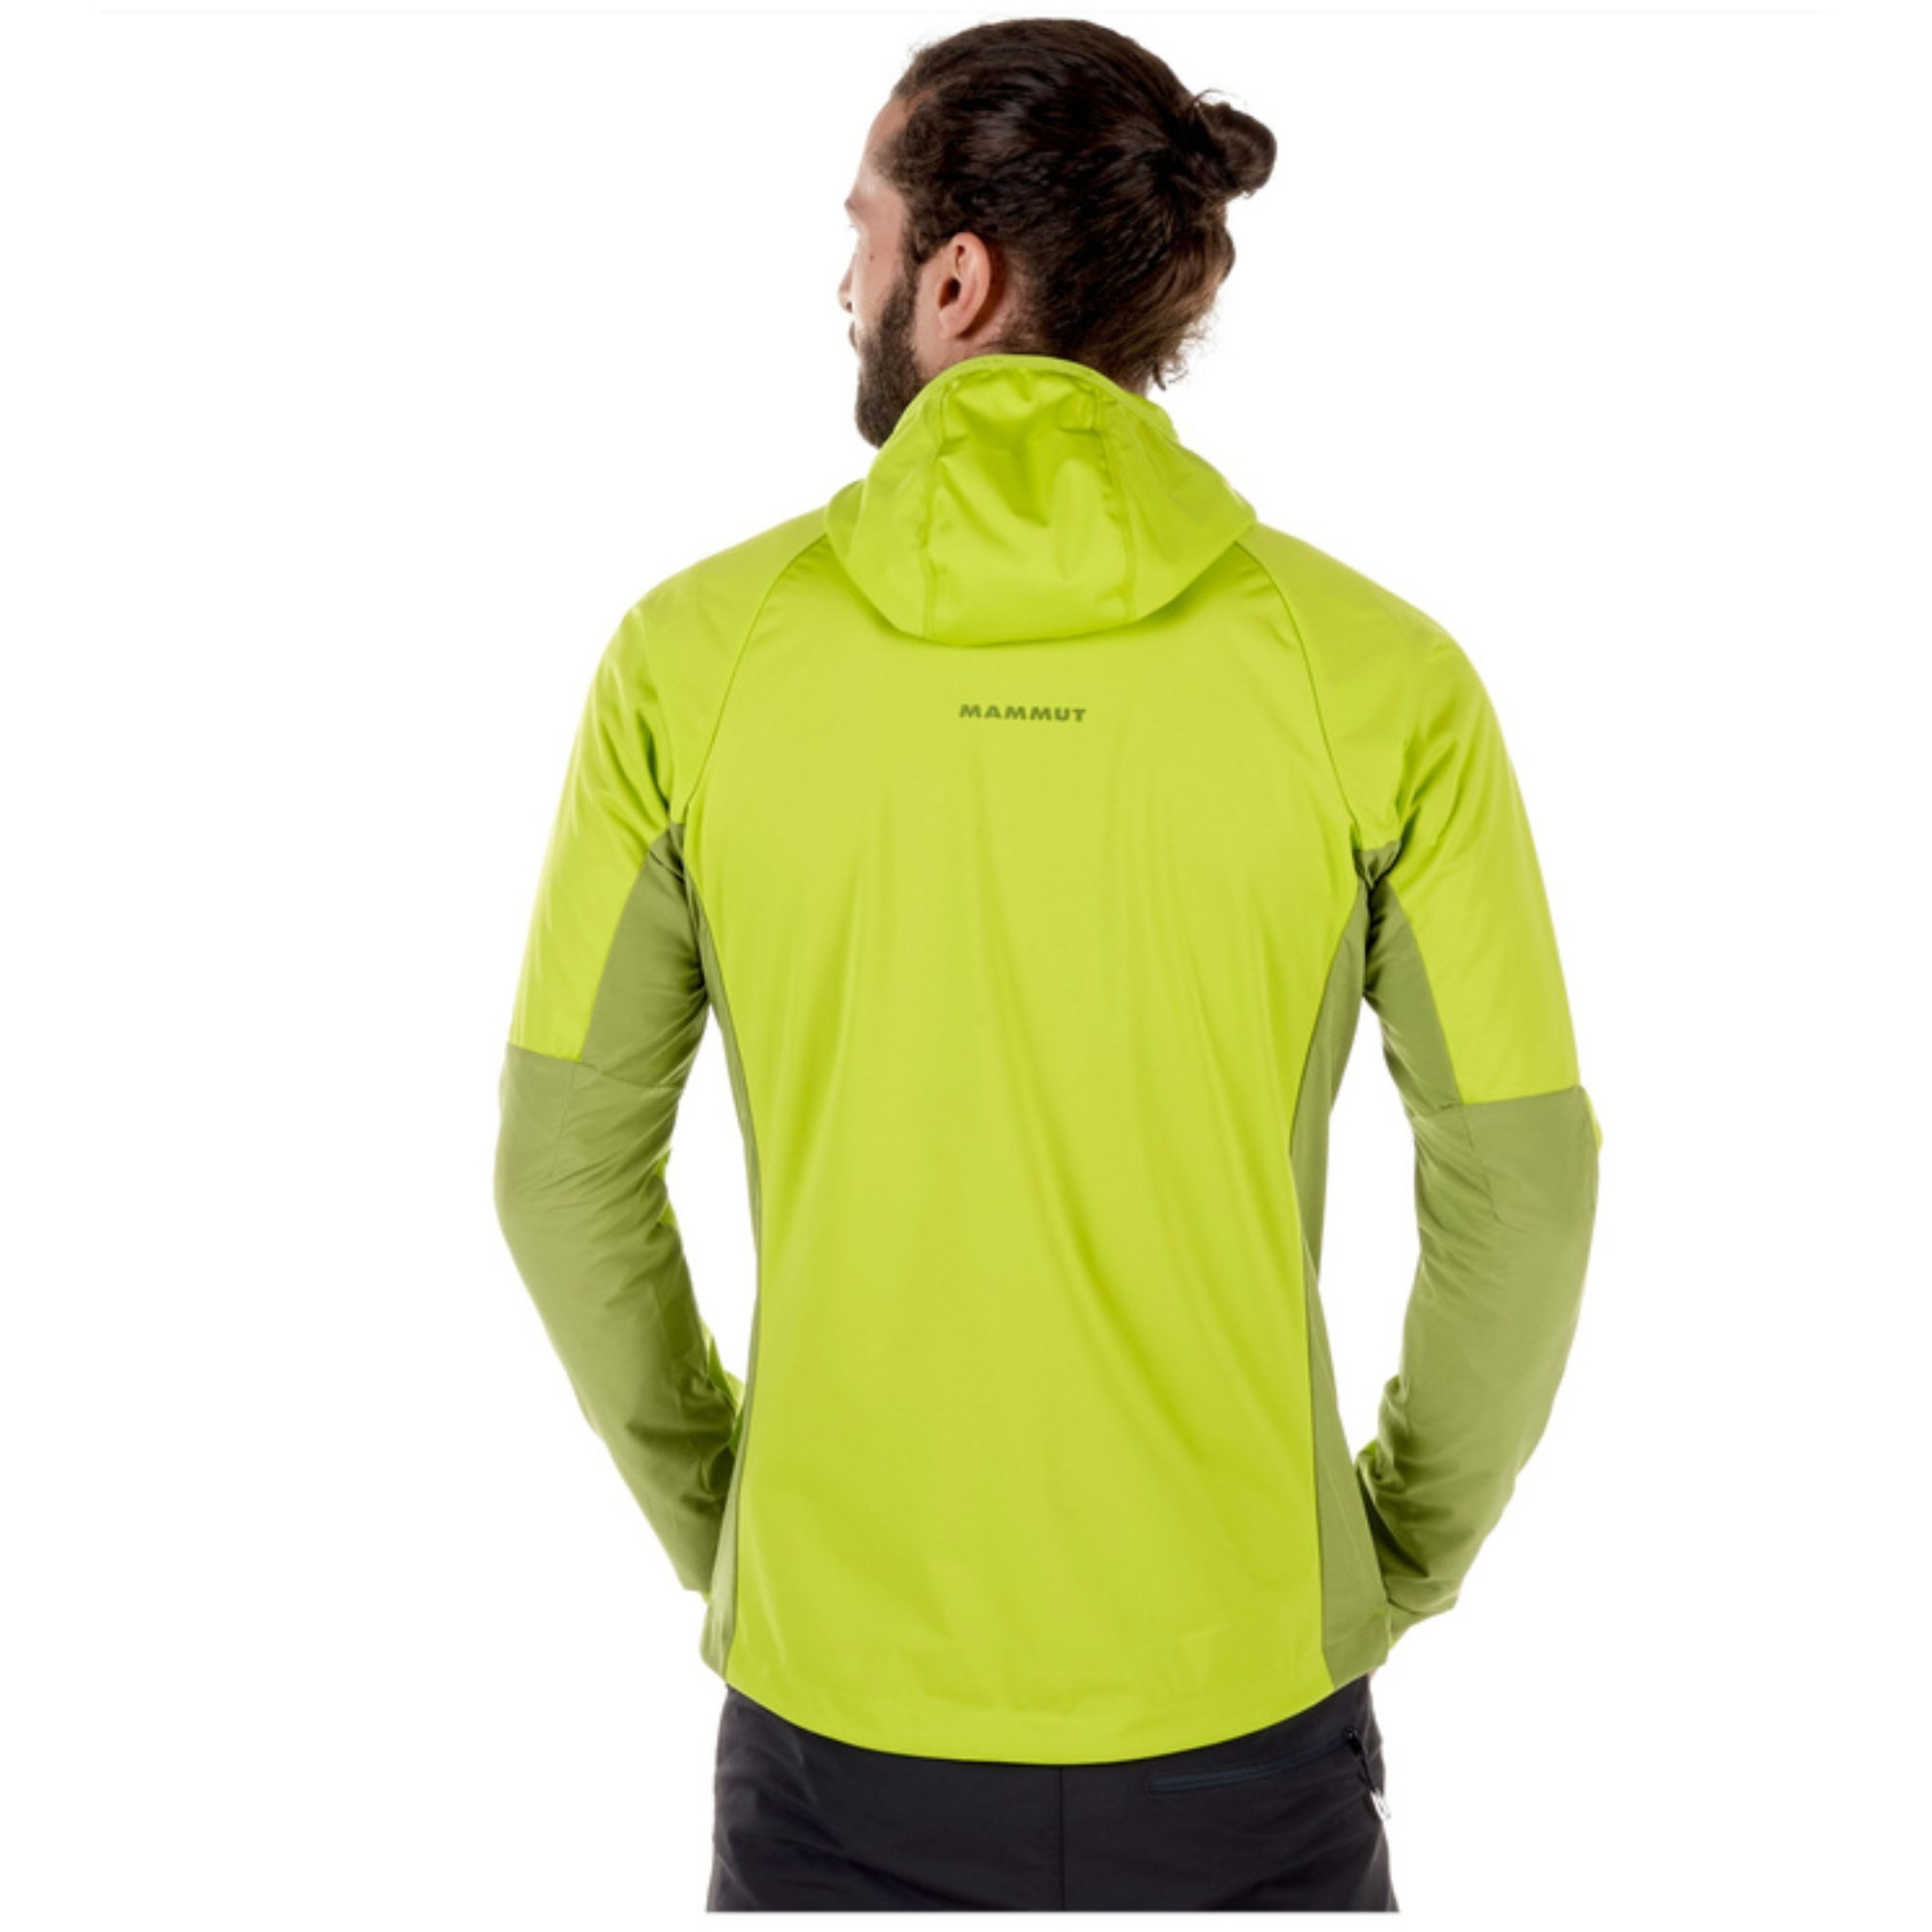 Mammut Kento Light SO Hooded Jacket - Sprout